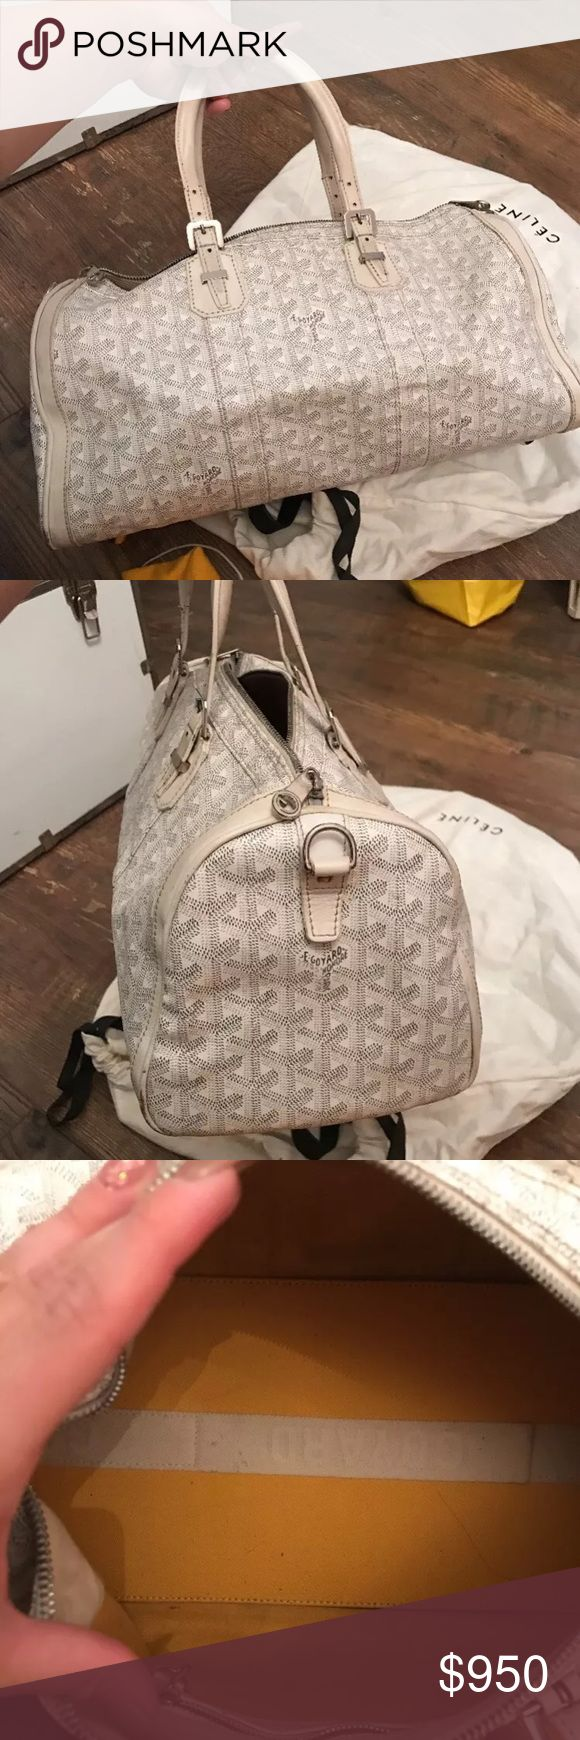 Goyard Croisiere 35 white handbag 100% authentic with dust bag. Purchased at Barneys. Loved Goyard Bags Satchels